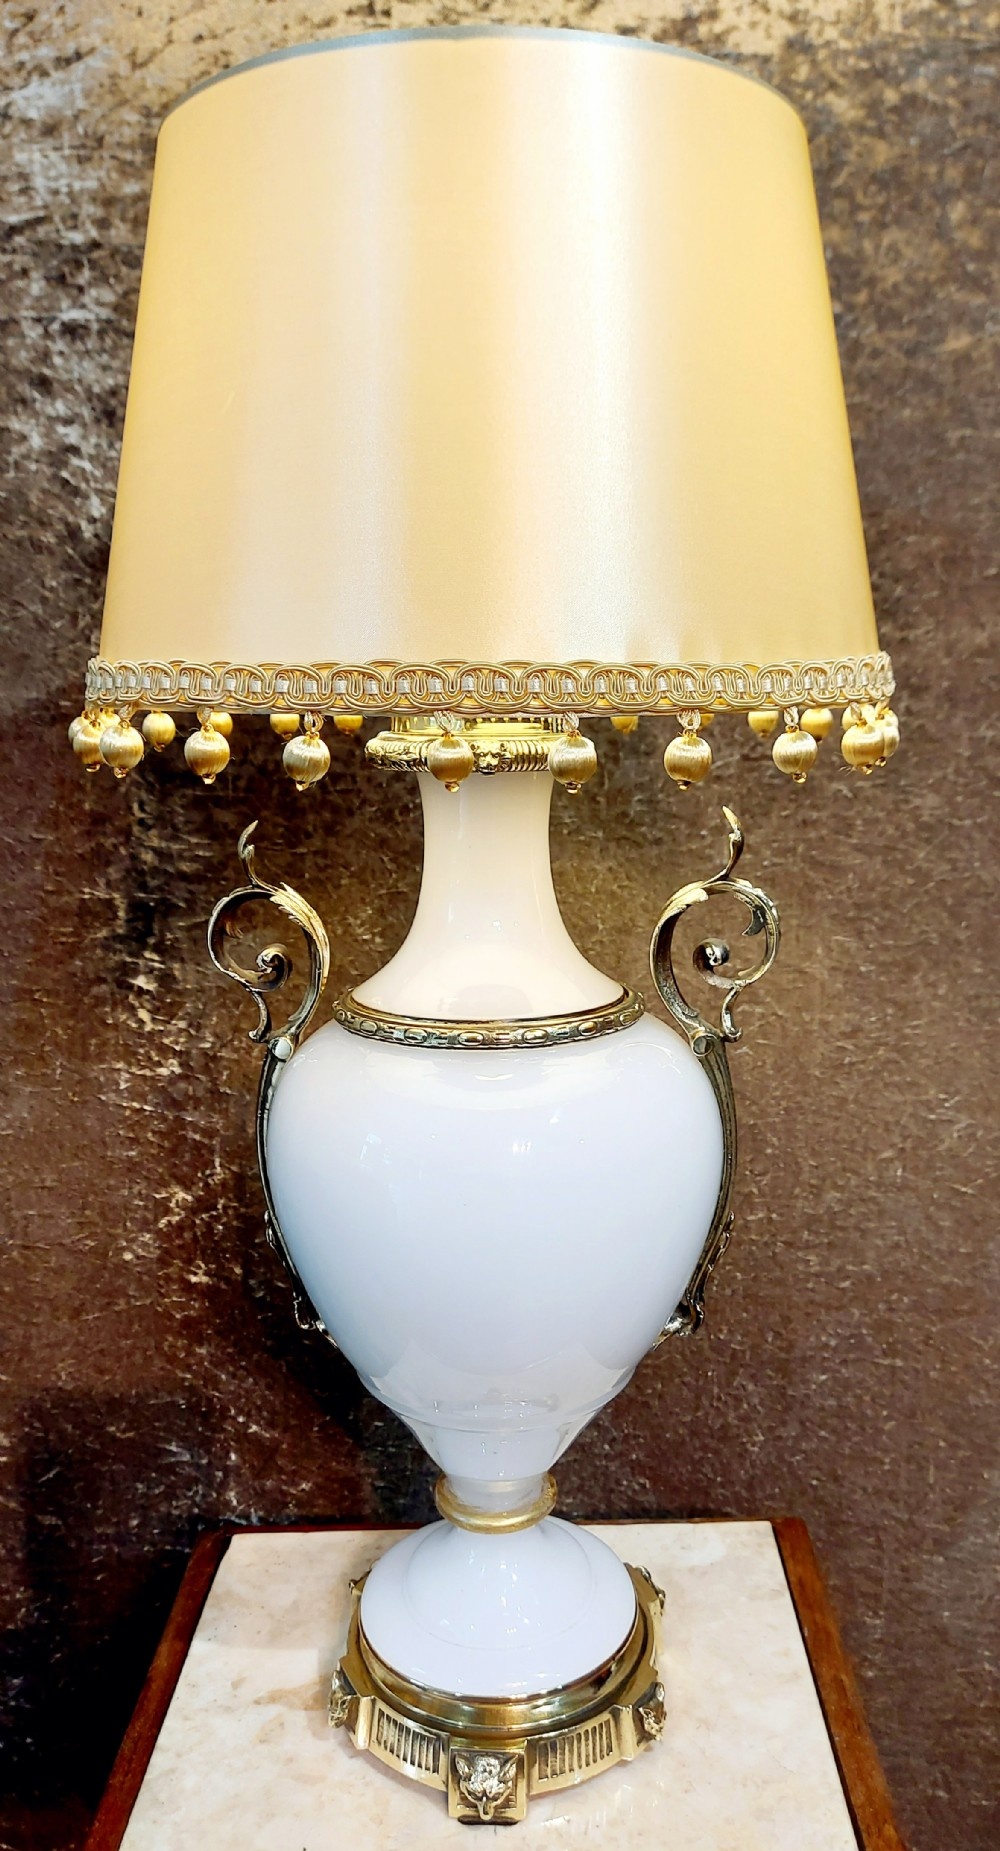 a large 19th century opaline glass lamp